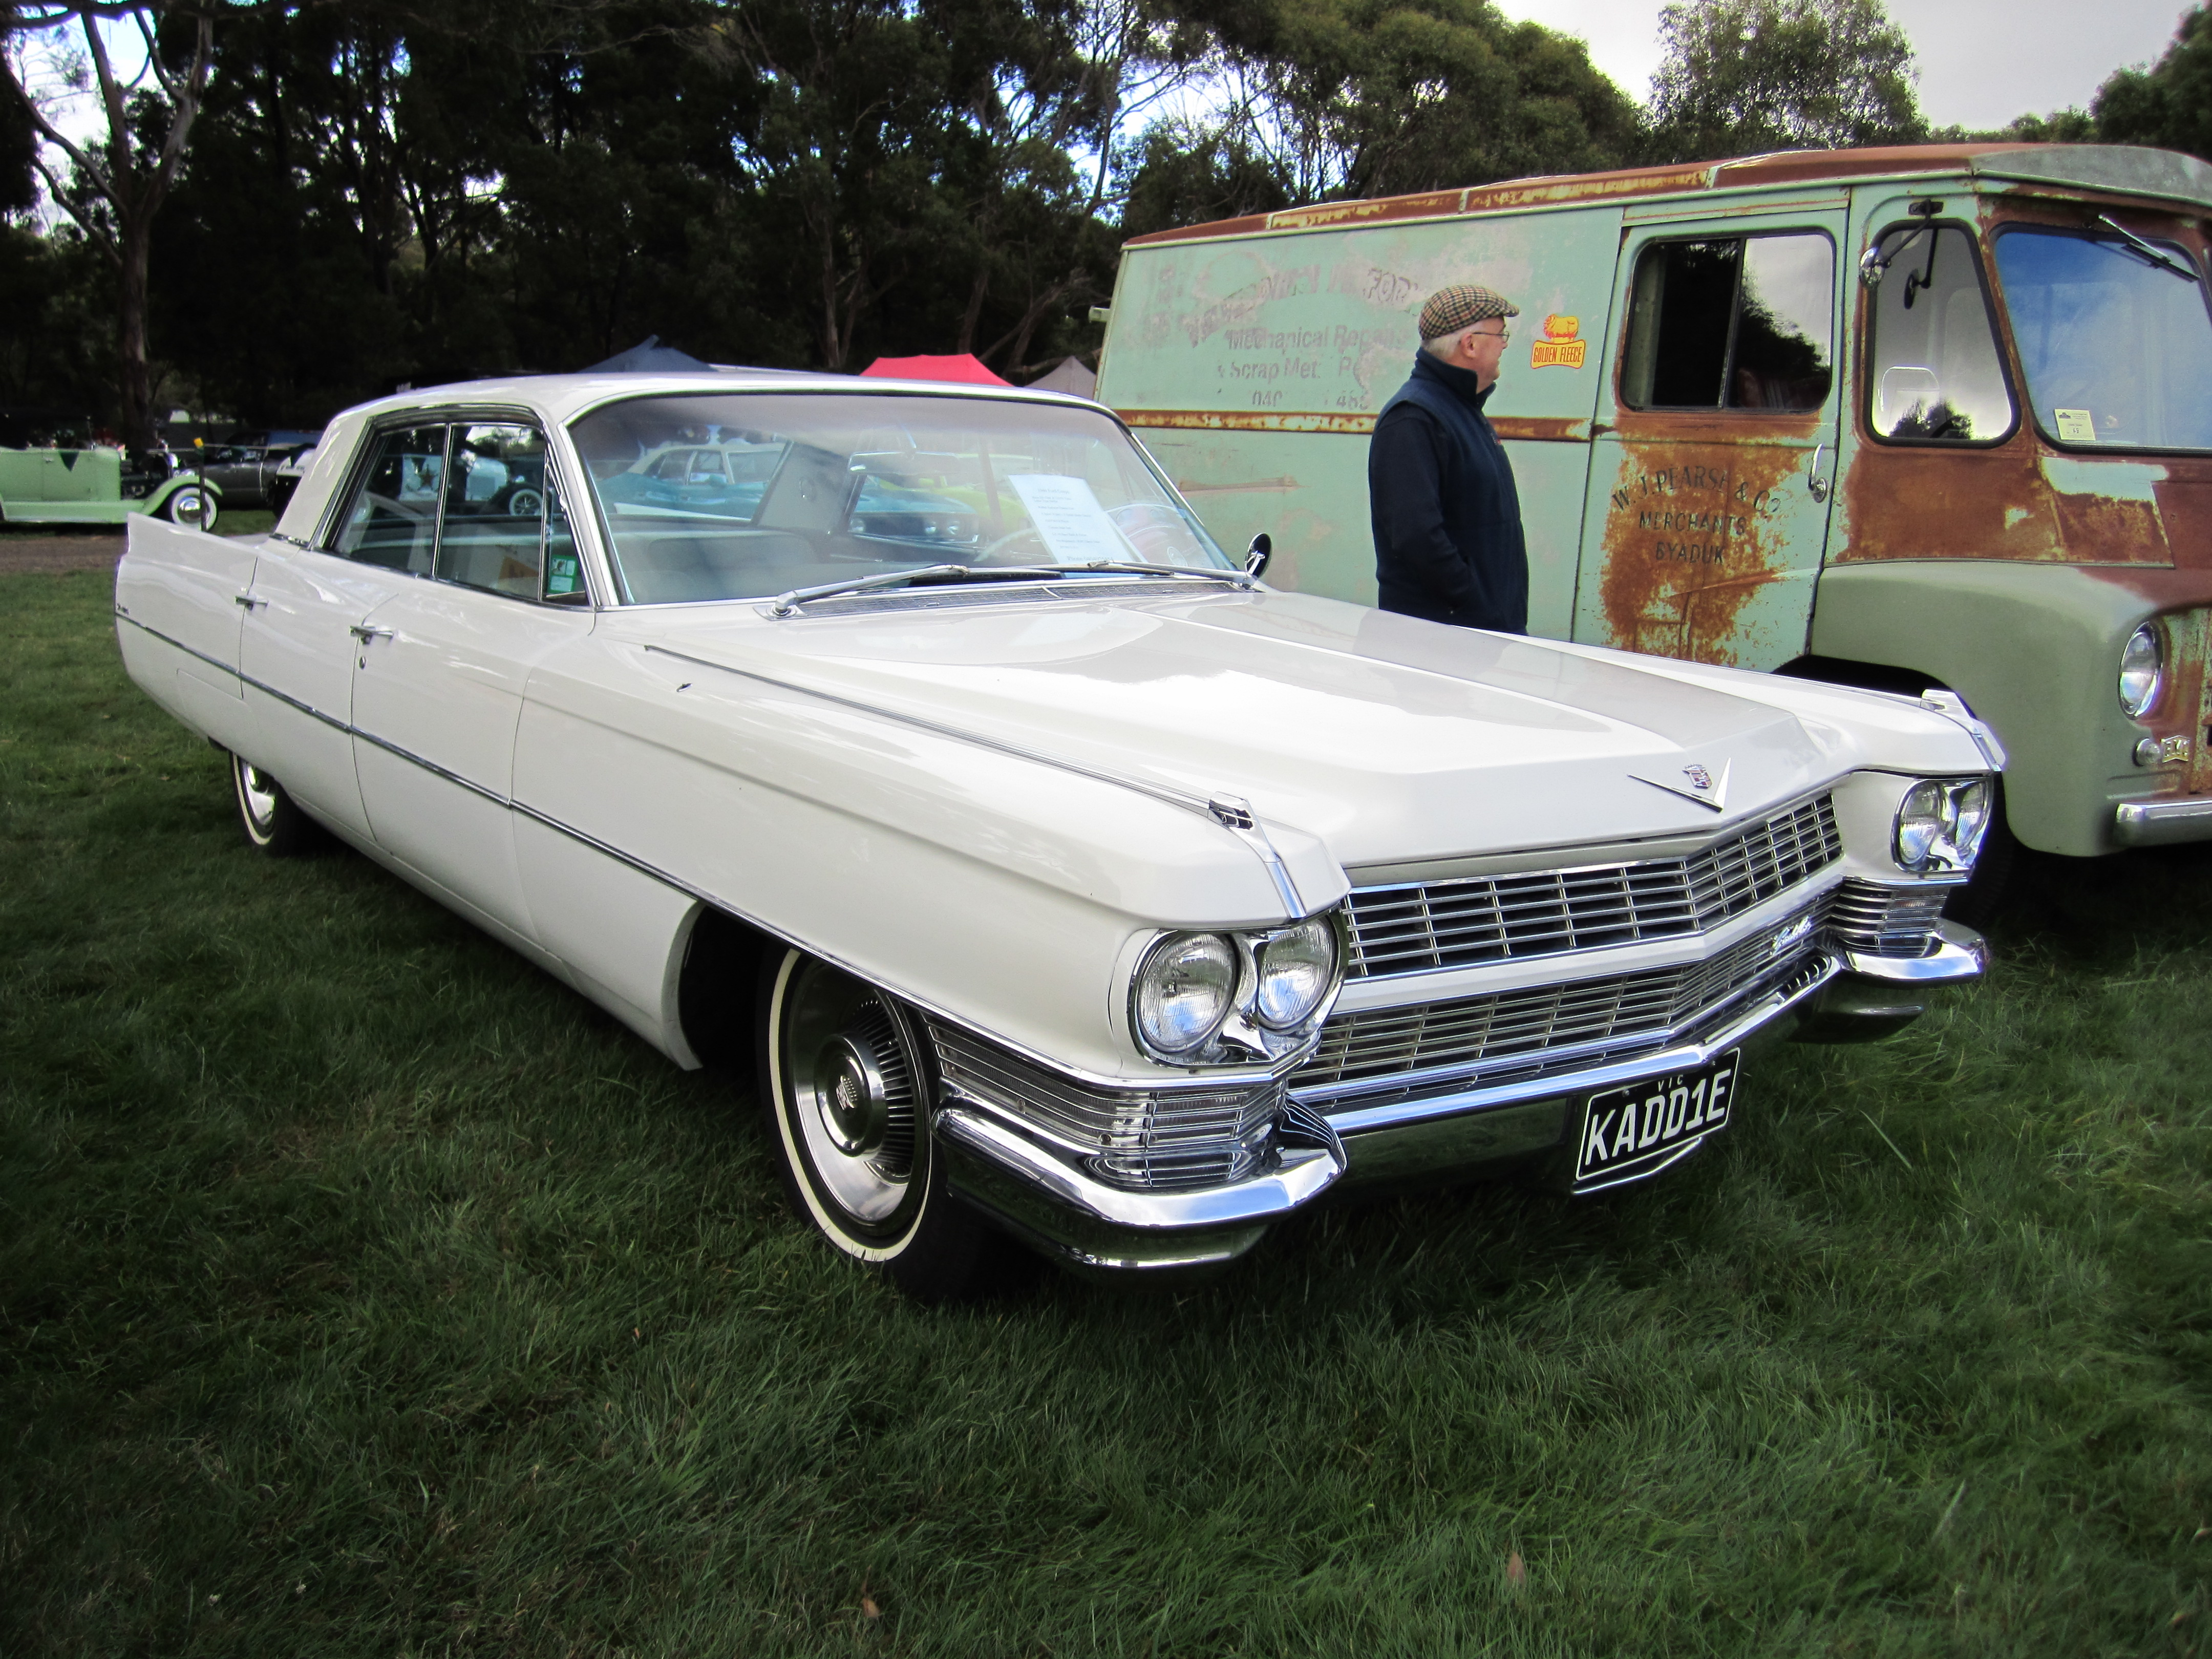 File:1964 Cadillac Sedan deVille.jpg - Wikimedia Commons